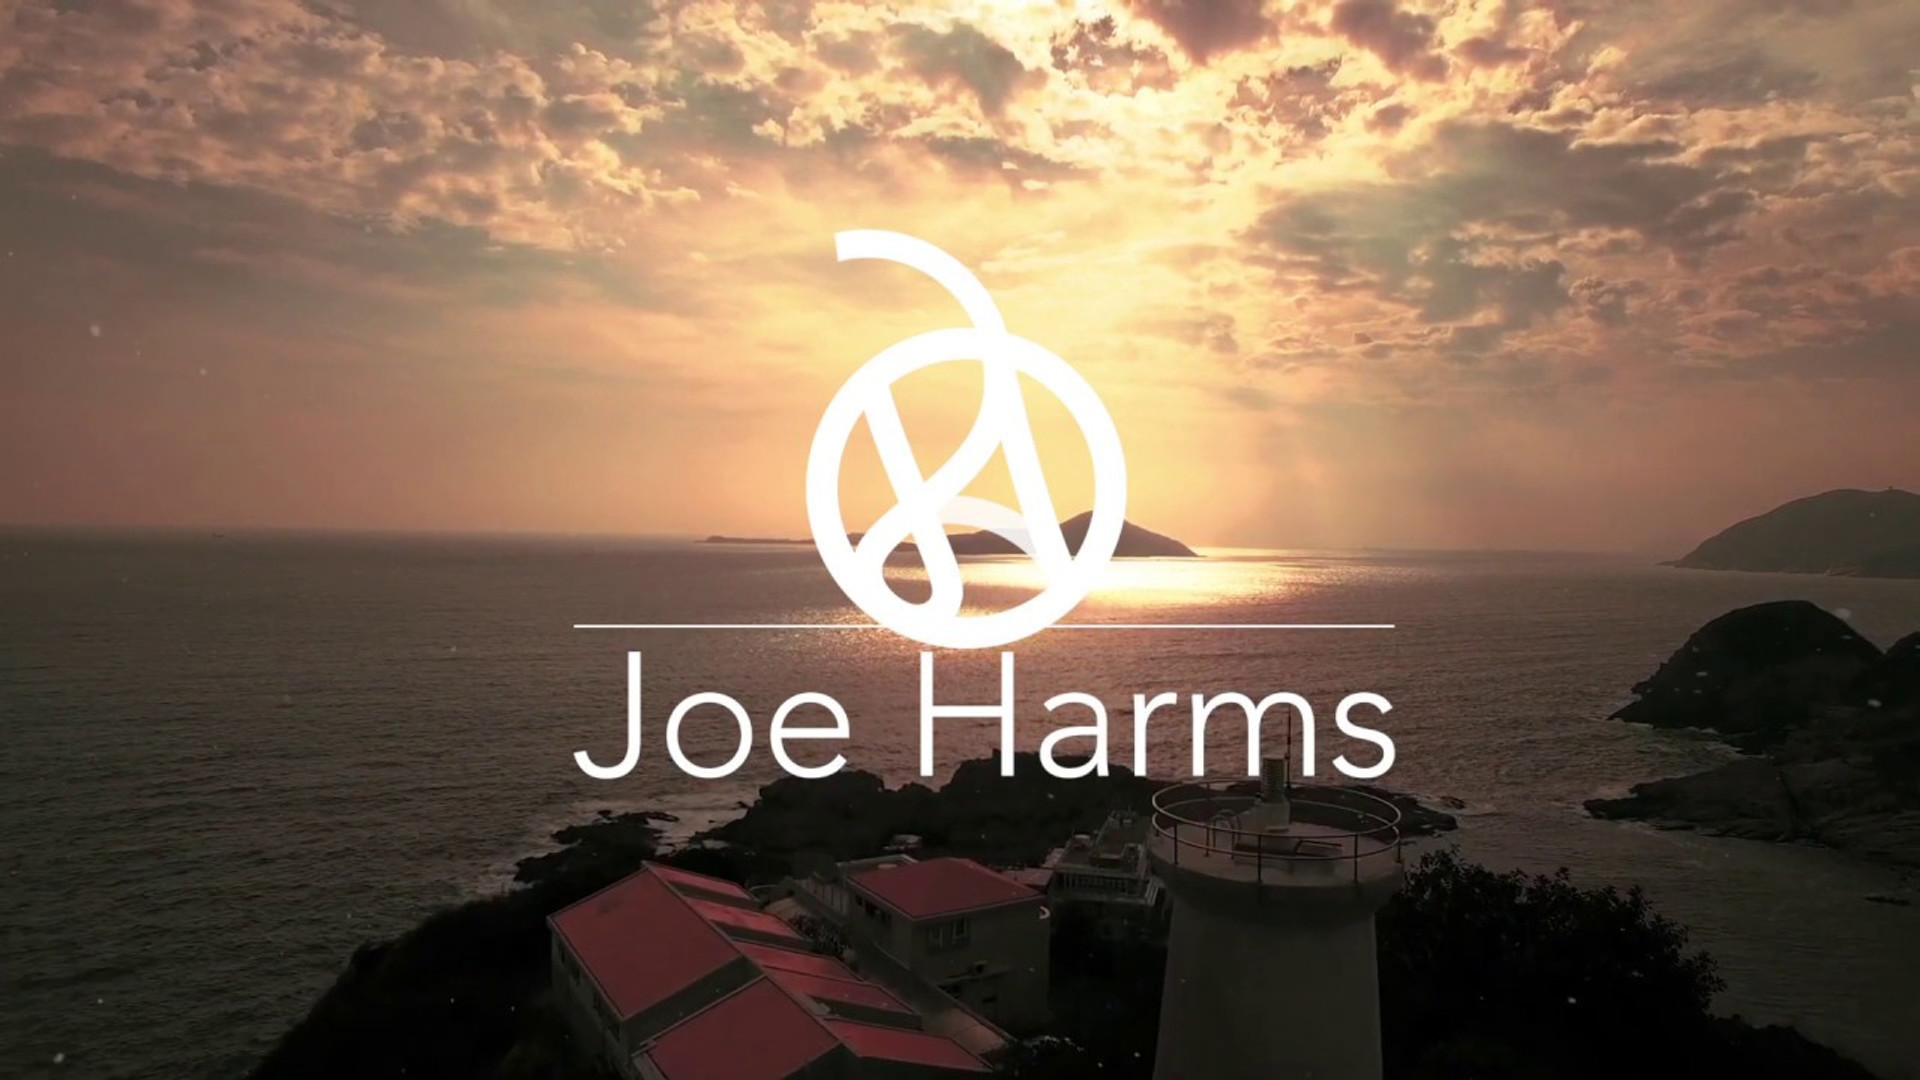 Joe Harms Teaser